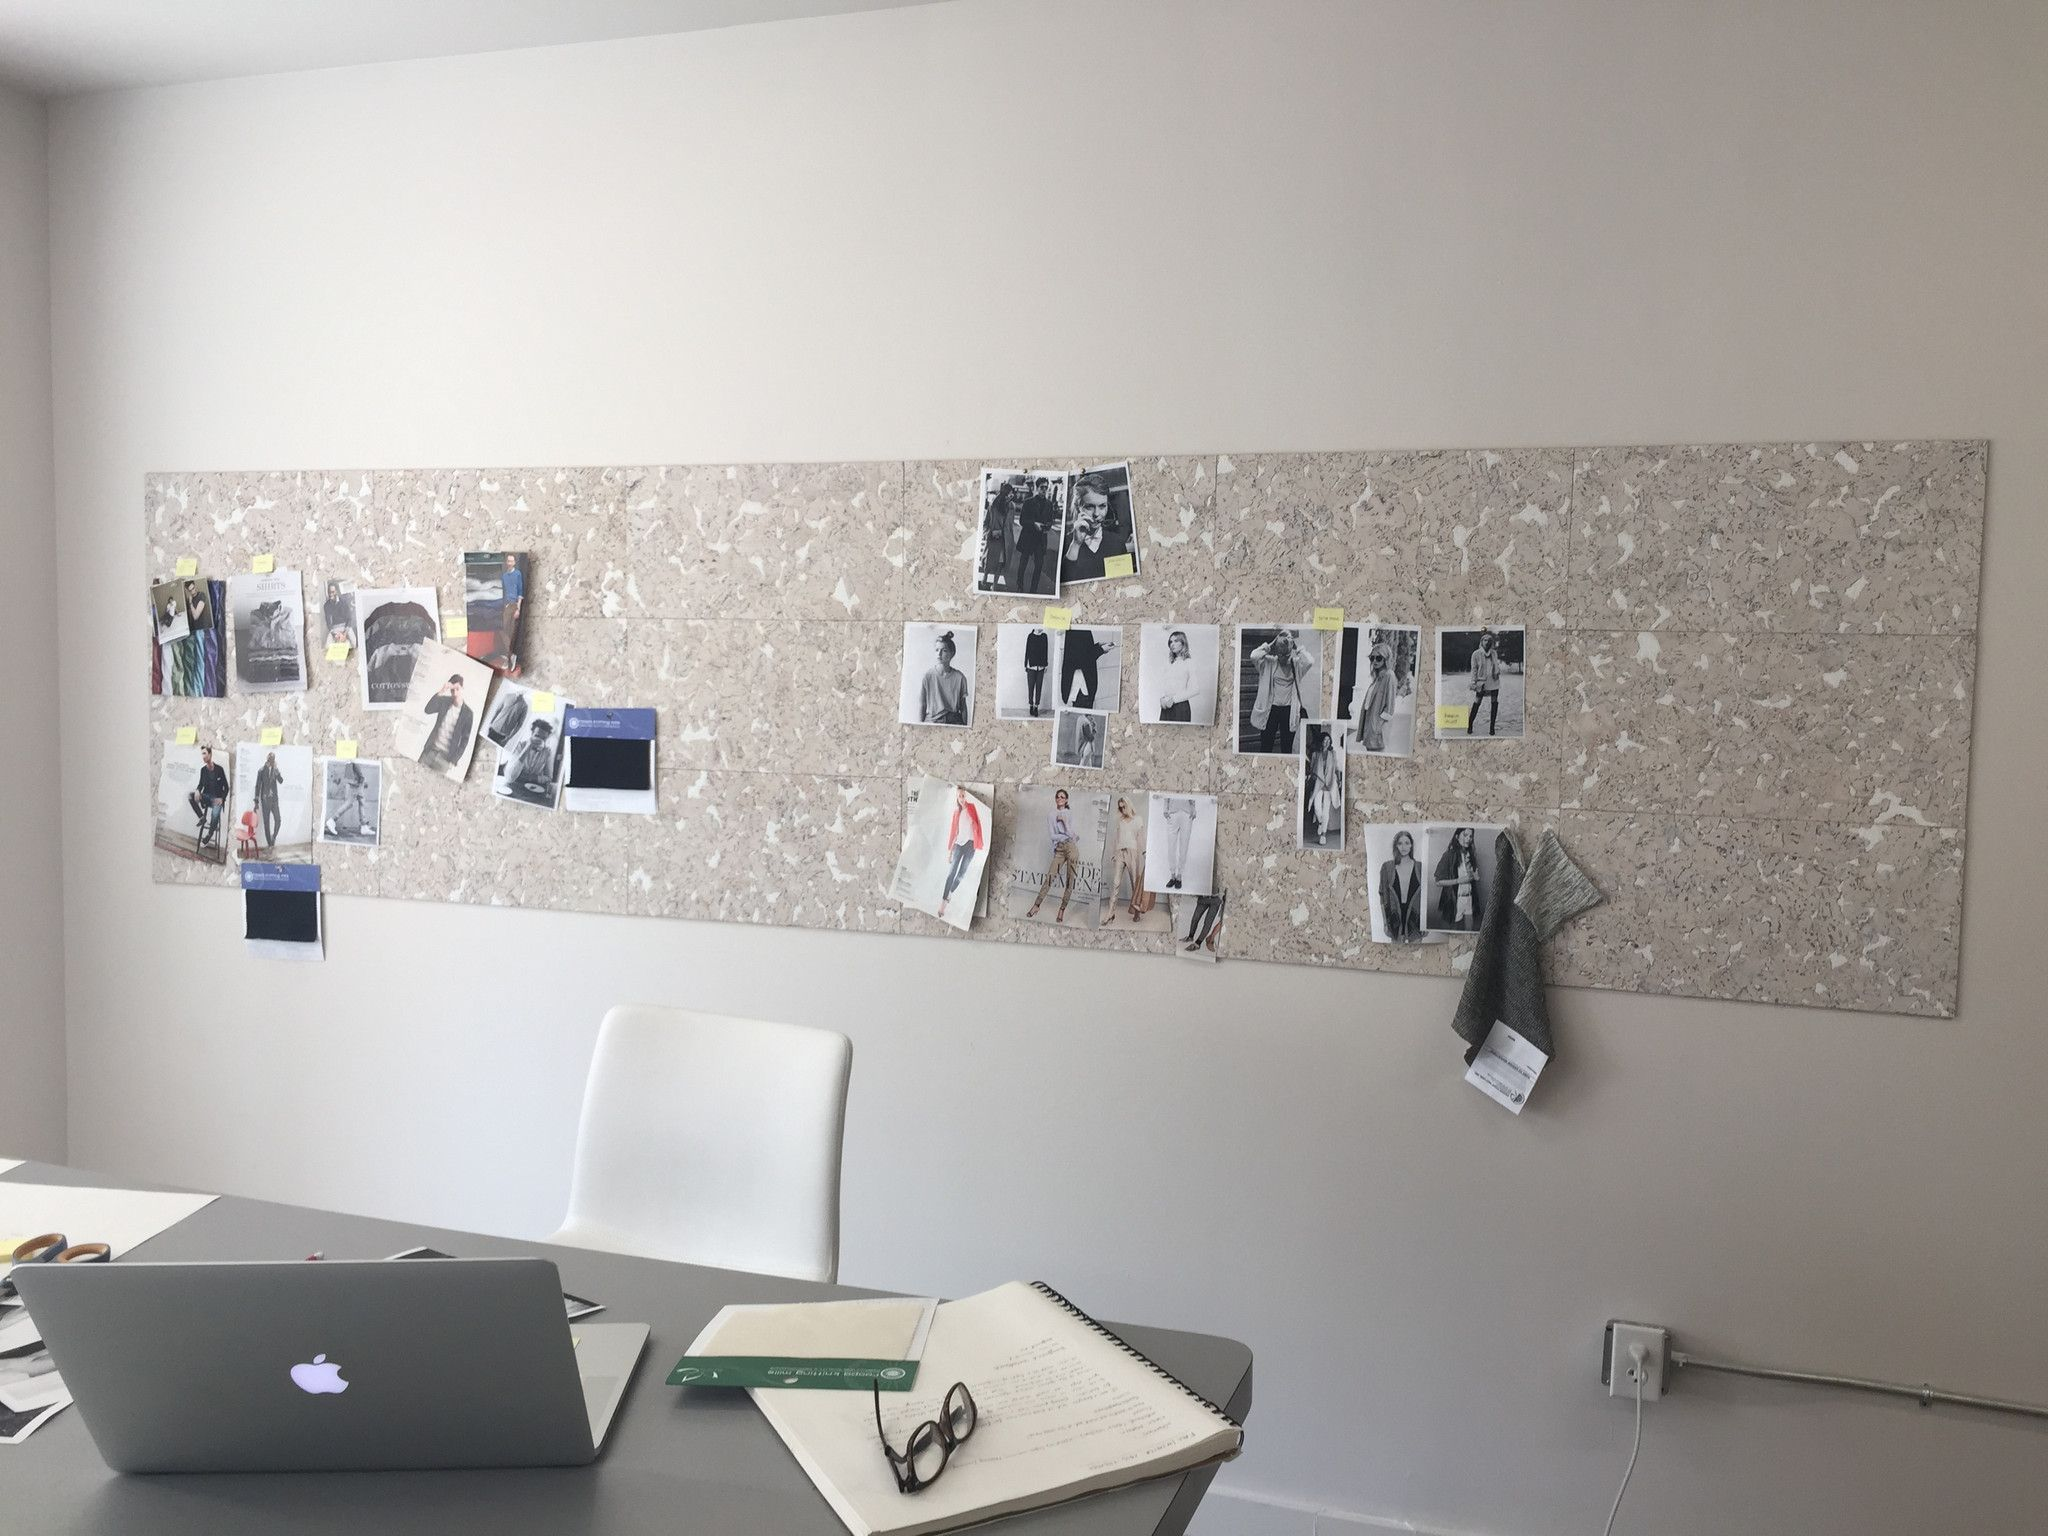 Presenting Our Blizzard Cork Wall Tile A Top Seller Because Of Its Natural Beauty And Neutral Coloring Blizzard Cor Cork Wall Cork Wall Tiles Cork Board Wall